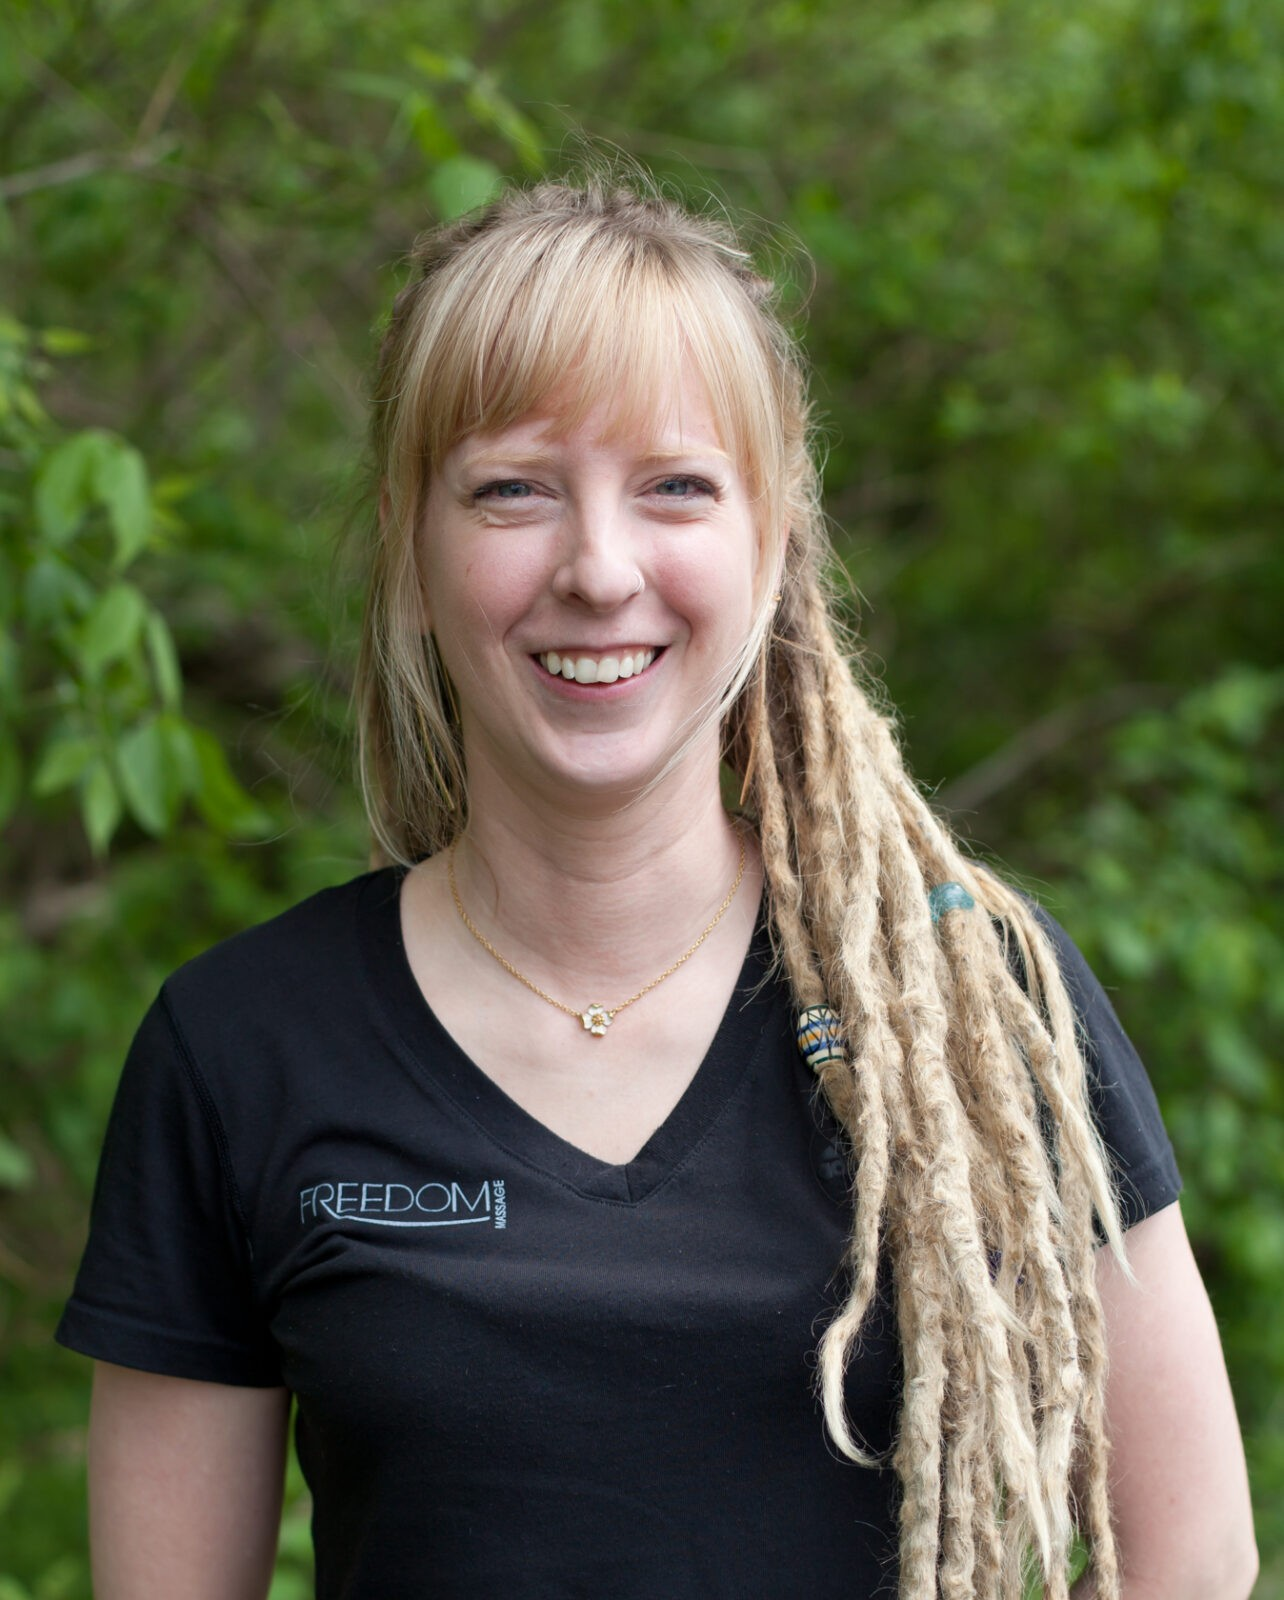 Michelle, LMT, Approved Continuing Education Provider with Freedom Massage